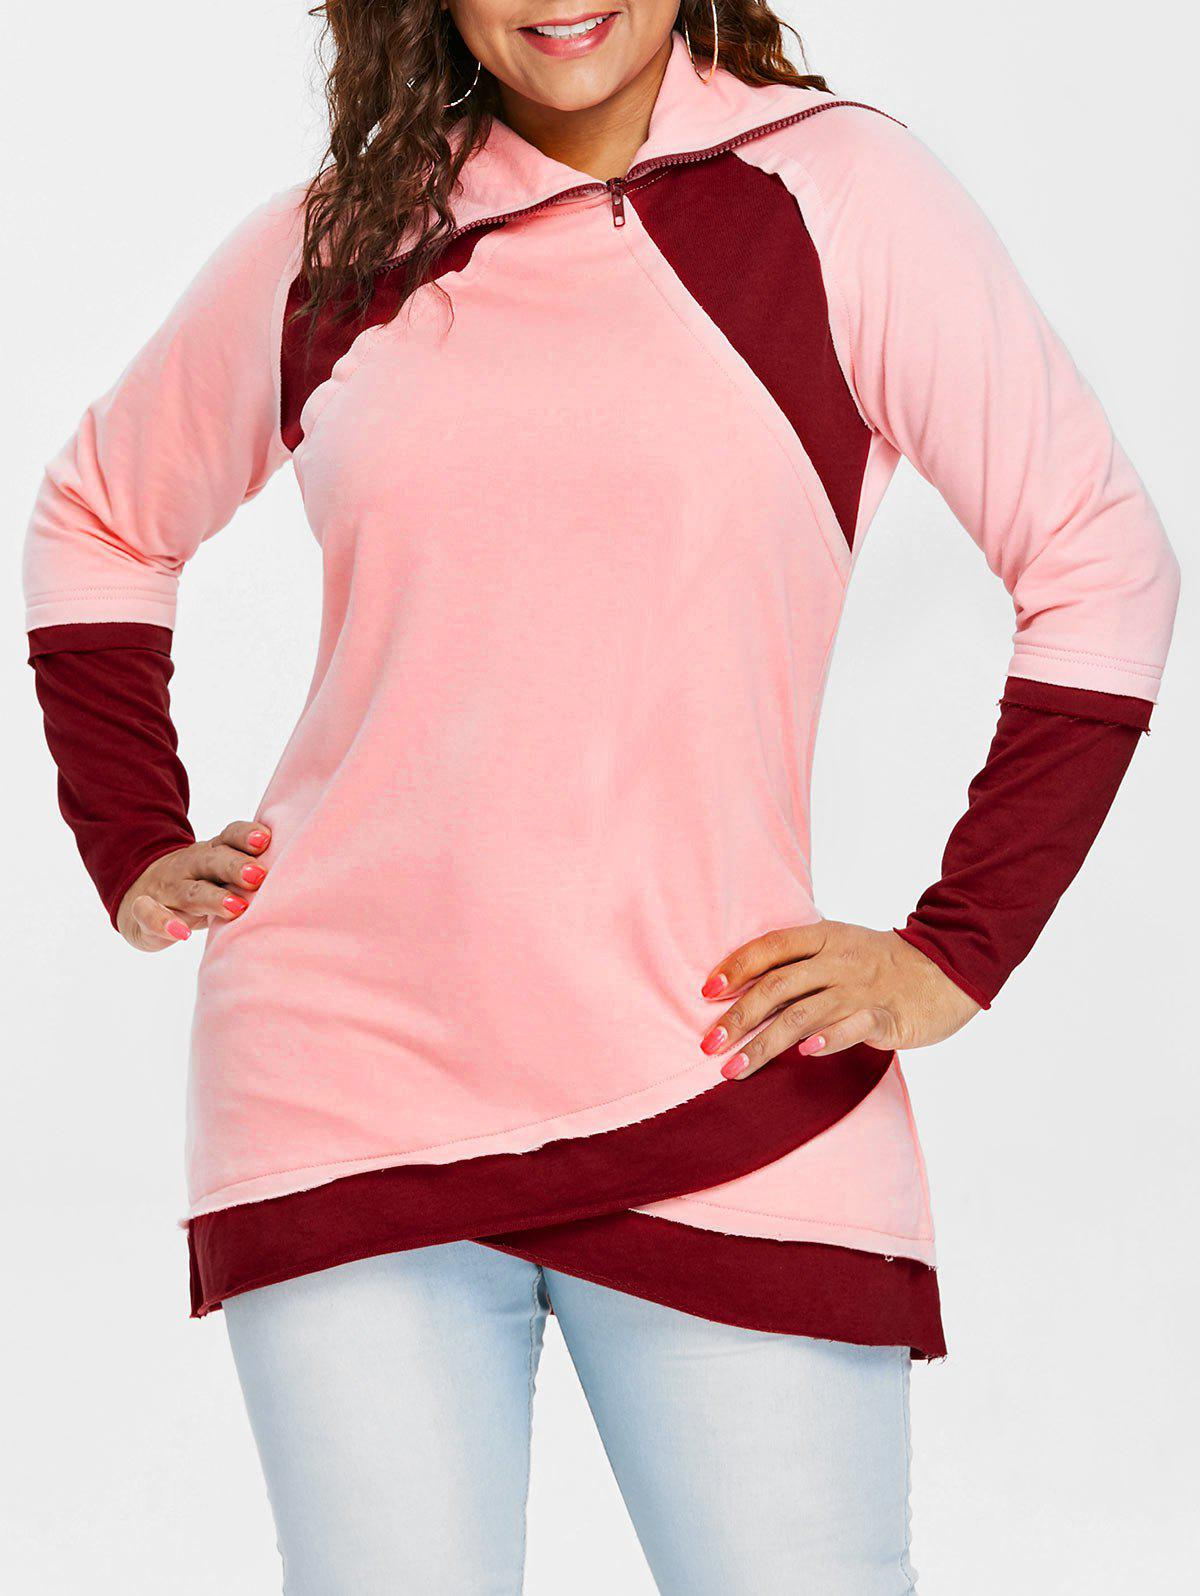 Long Sleeve Color Lump Plus Size Sweatshirt - PINK BUBBLEGUM 1X